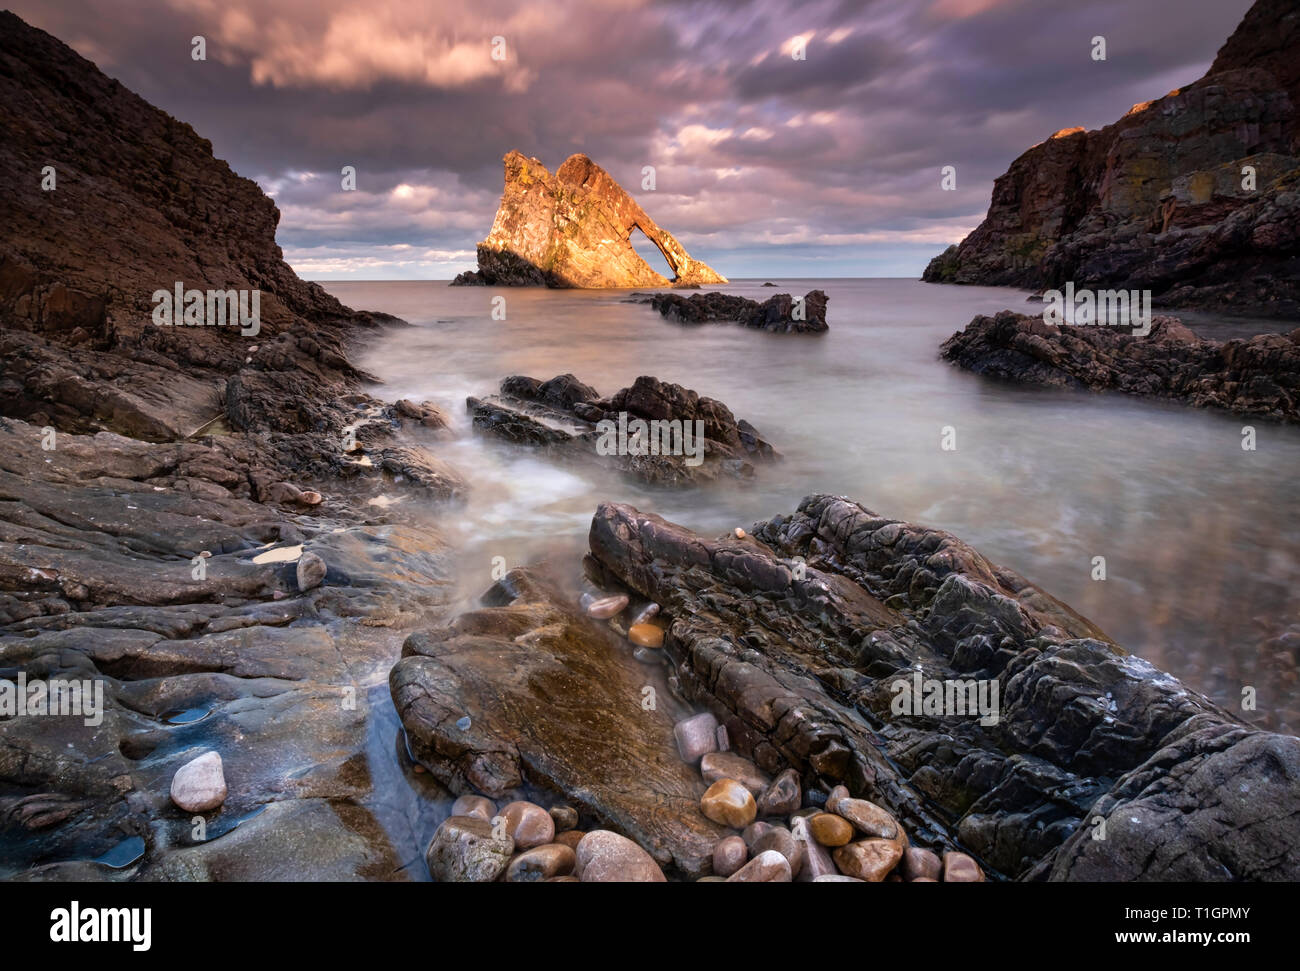 Bow Fiddle Rock, near Portnockie, Moray Coast, North East Scotland, Scotland, UK - Stock Image